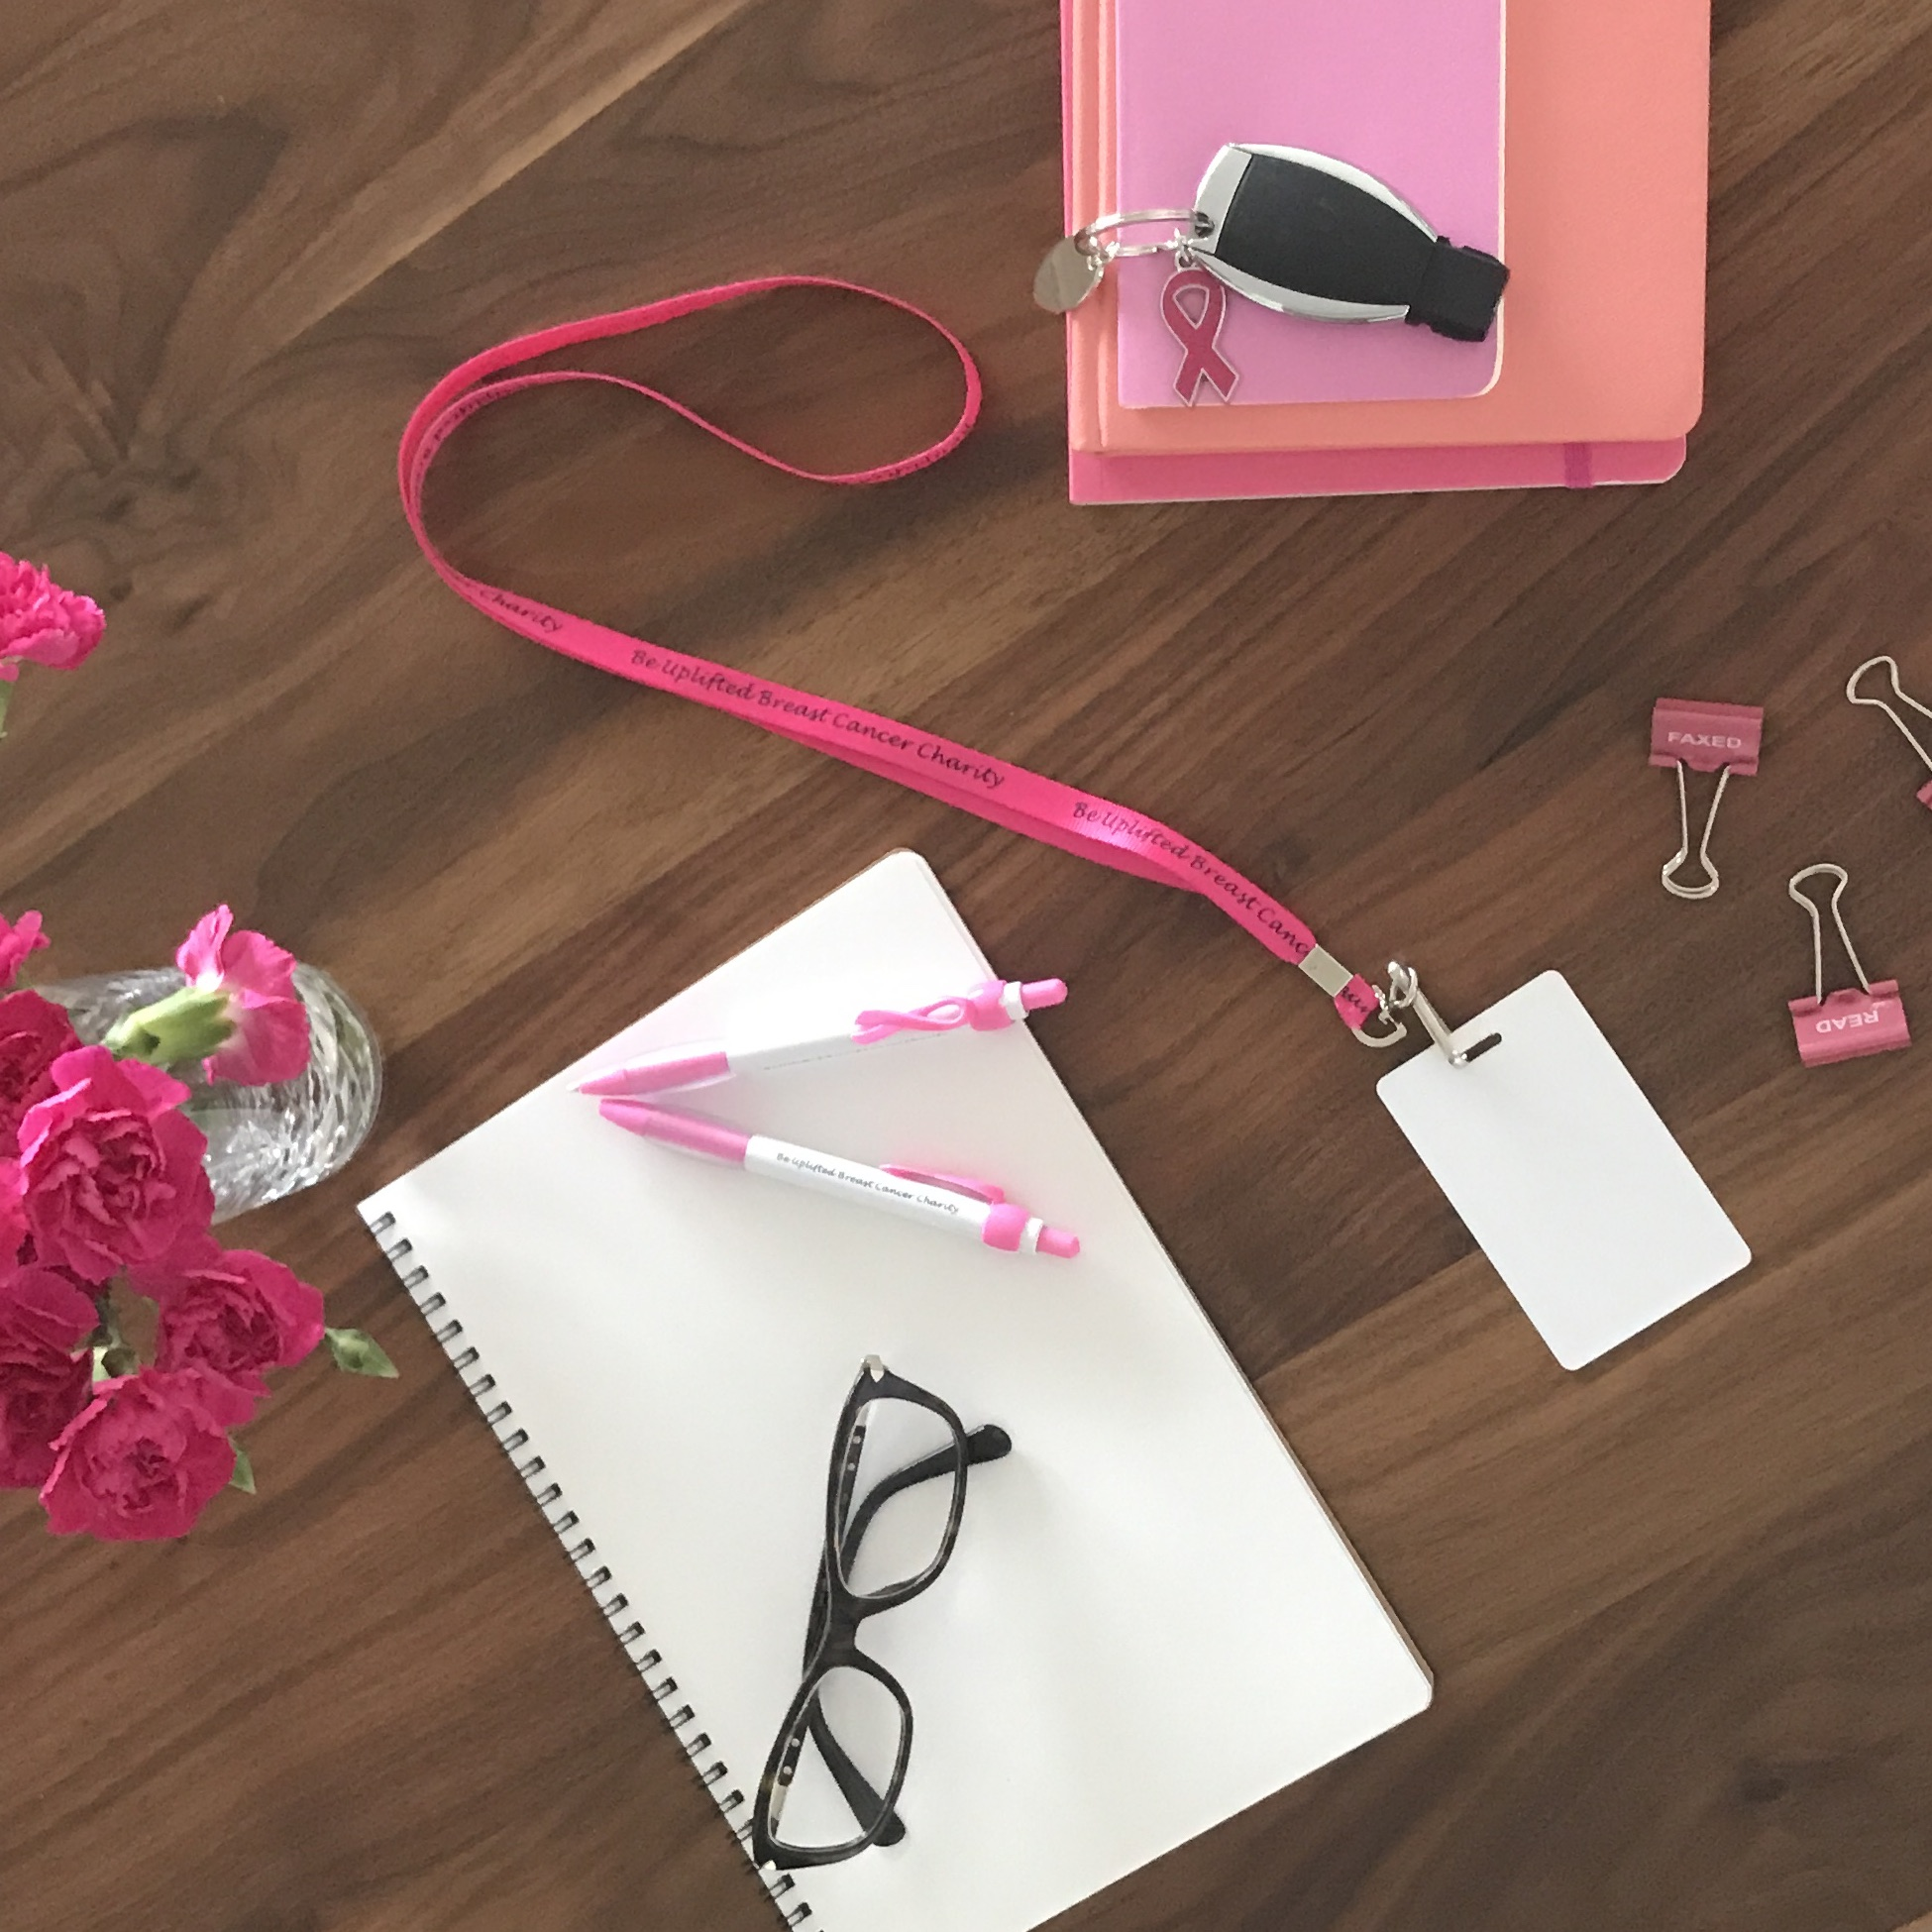 Easy Breast Cancer Awareness Craft Ideas